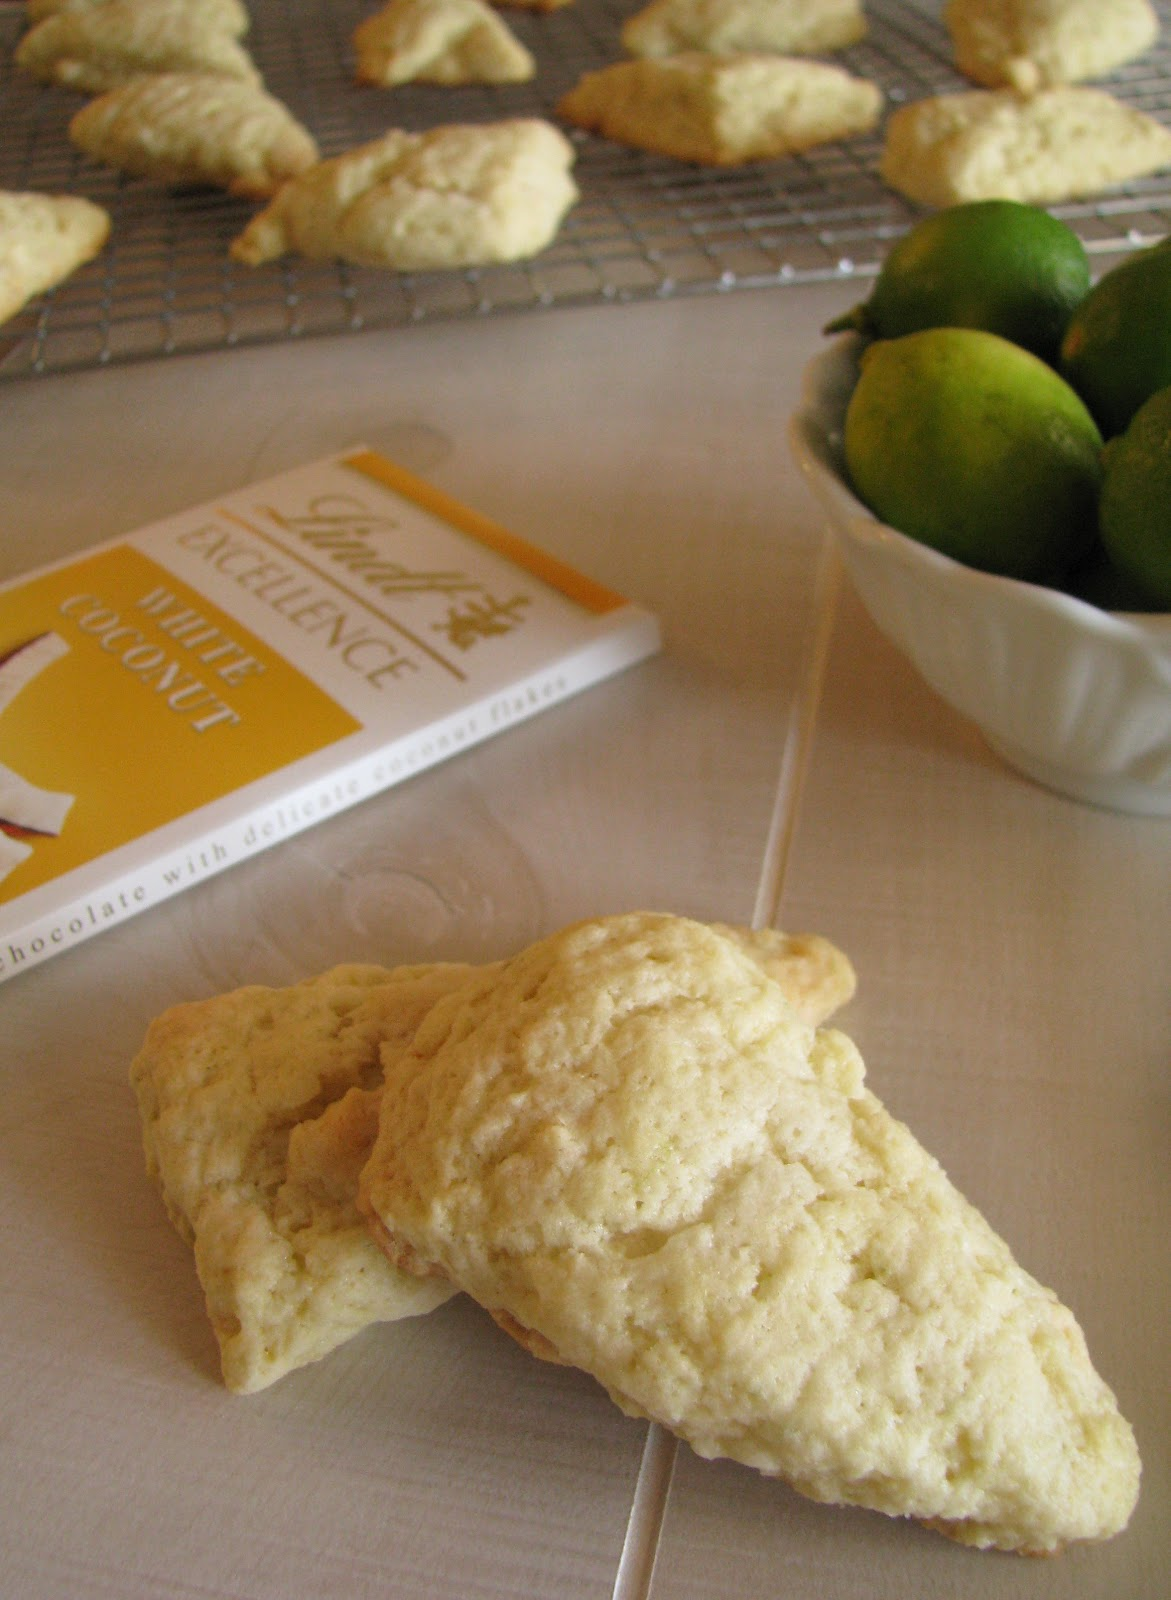 Like My Lemon Raspberry Scones Or Savory Like My Bacon And Chive Scones But These Key Lime And Coconut White Chocolate Are My Favorite